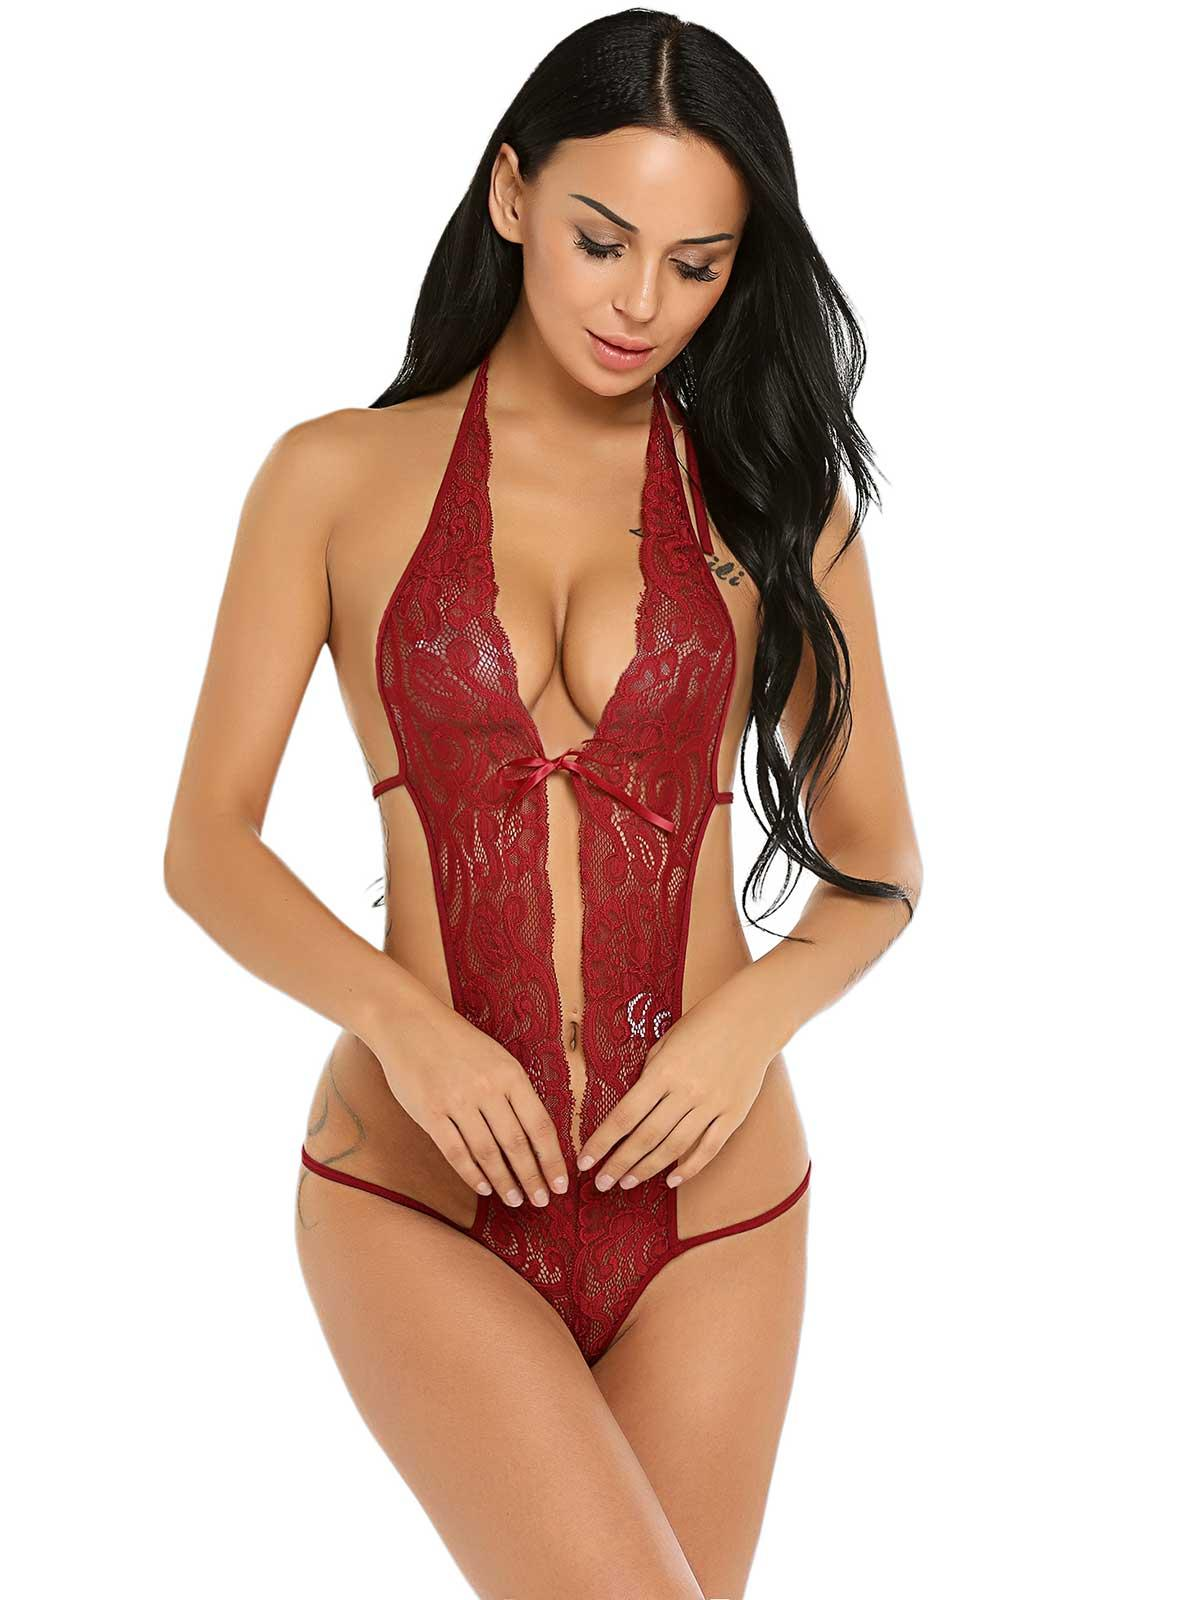 Dark red Halter Sheer Lace Plunging One Piece Lingerie Bodysuit bb1558974